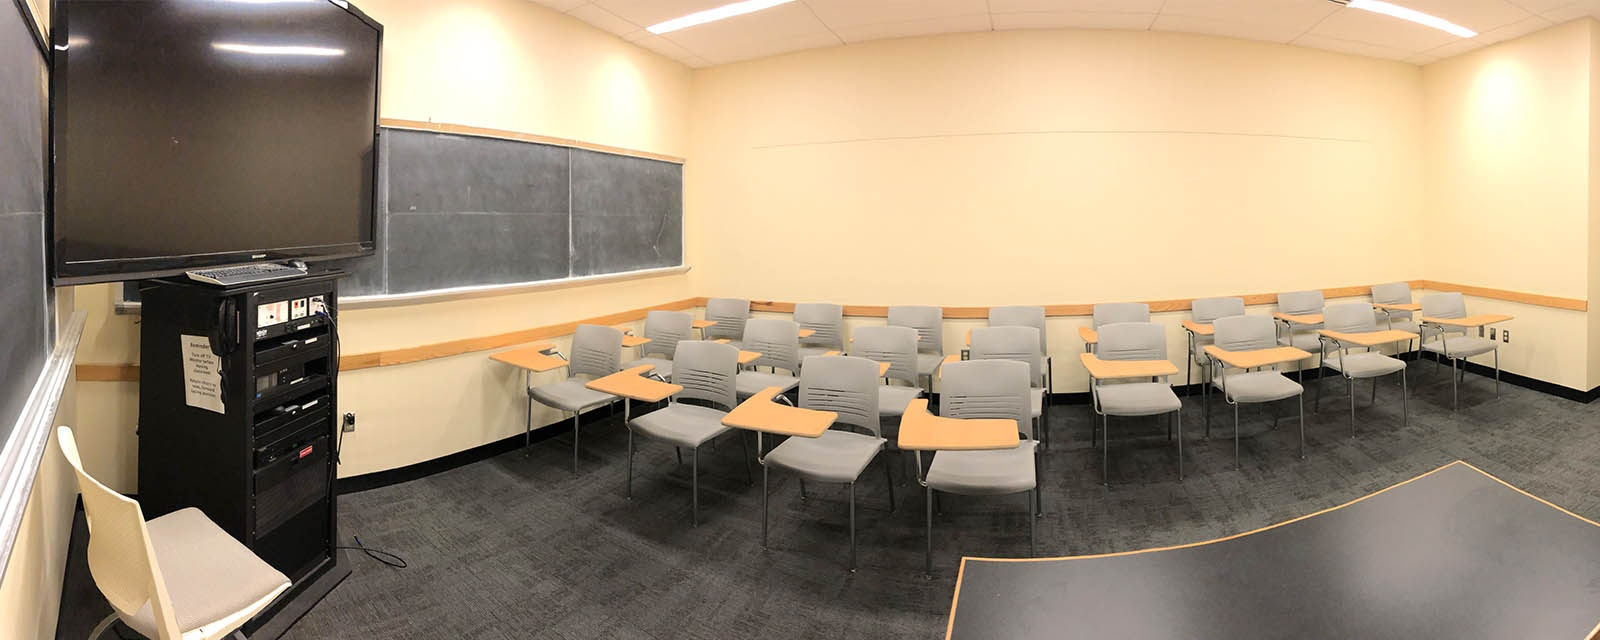 Panorama of HBC 306 from front of room, moveable chairs, teaching station front left